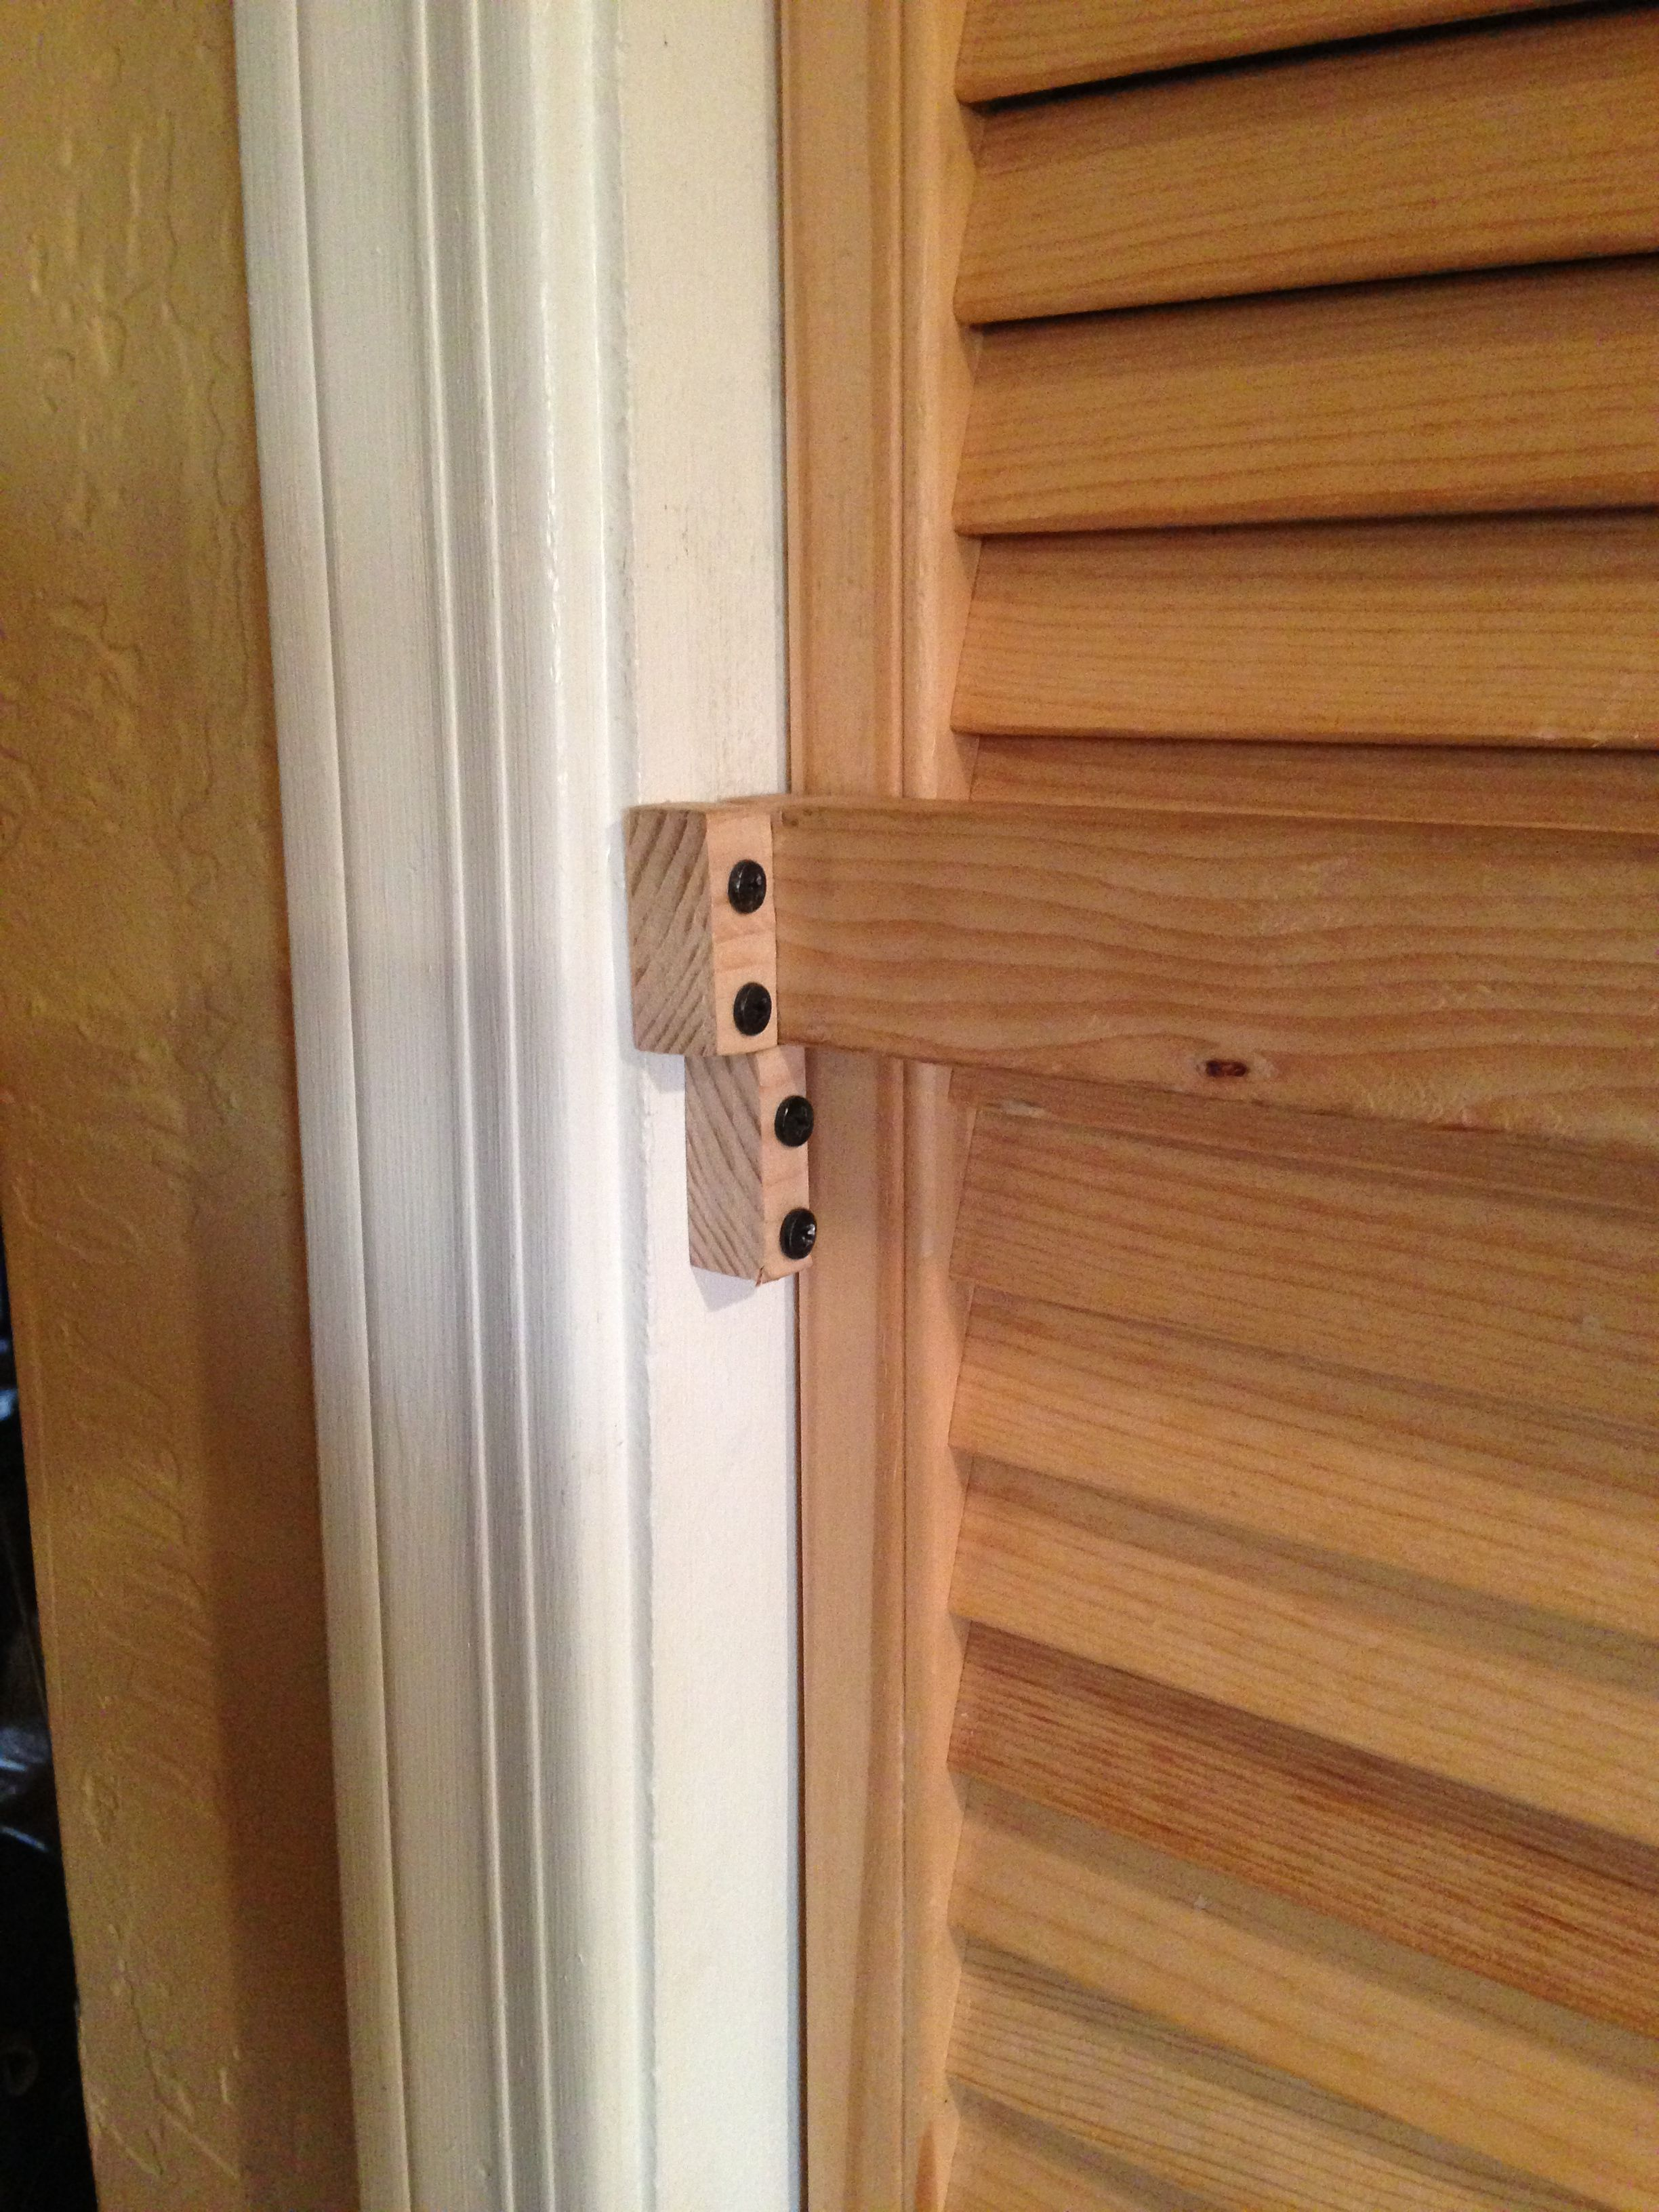 Only 8 Screws Were Used To Perfect This Pantry Door Lock I Pre Drilled The Wooden Blocks I Made Then Pre Drilled The Doo Door Frame Door Handles Wooden Blocks